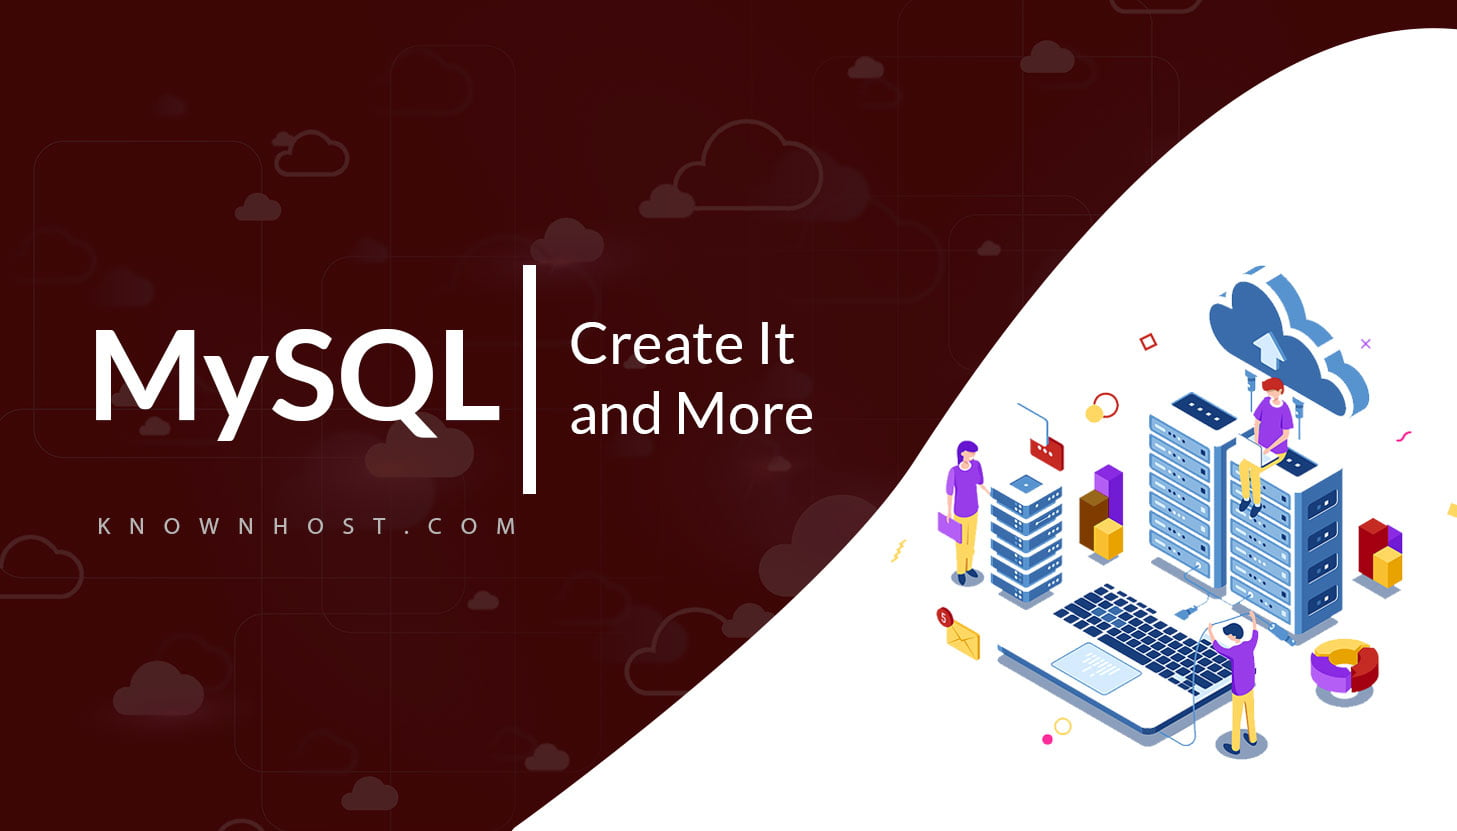 MySQL Database | How to Create It and More